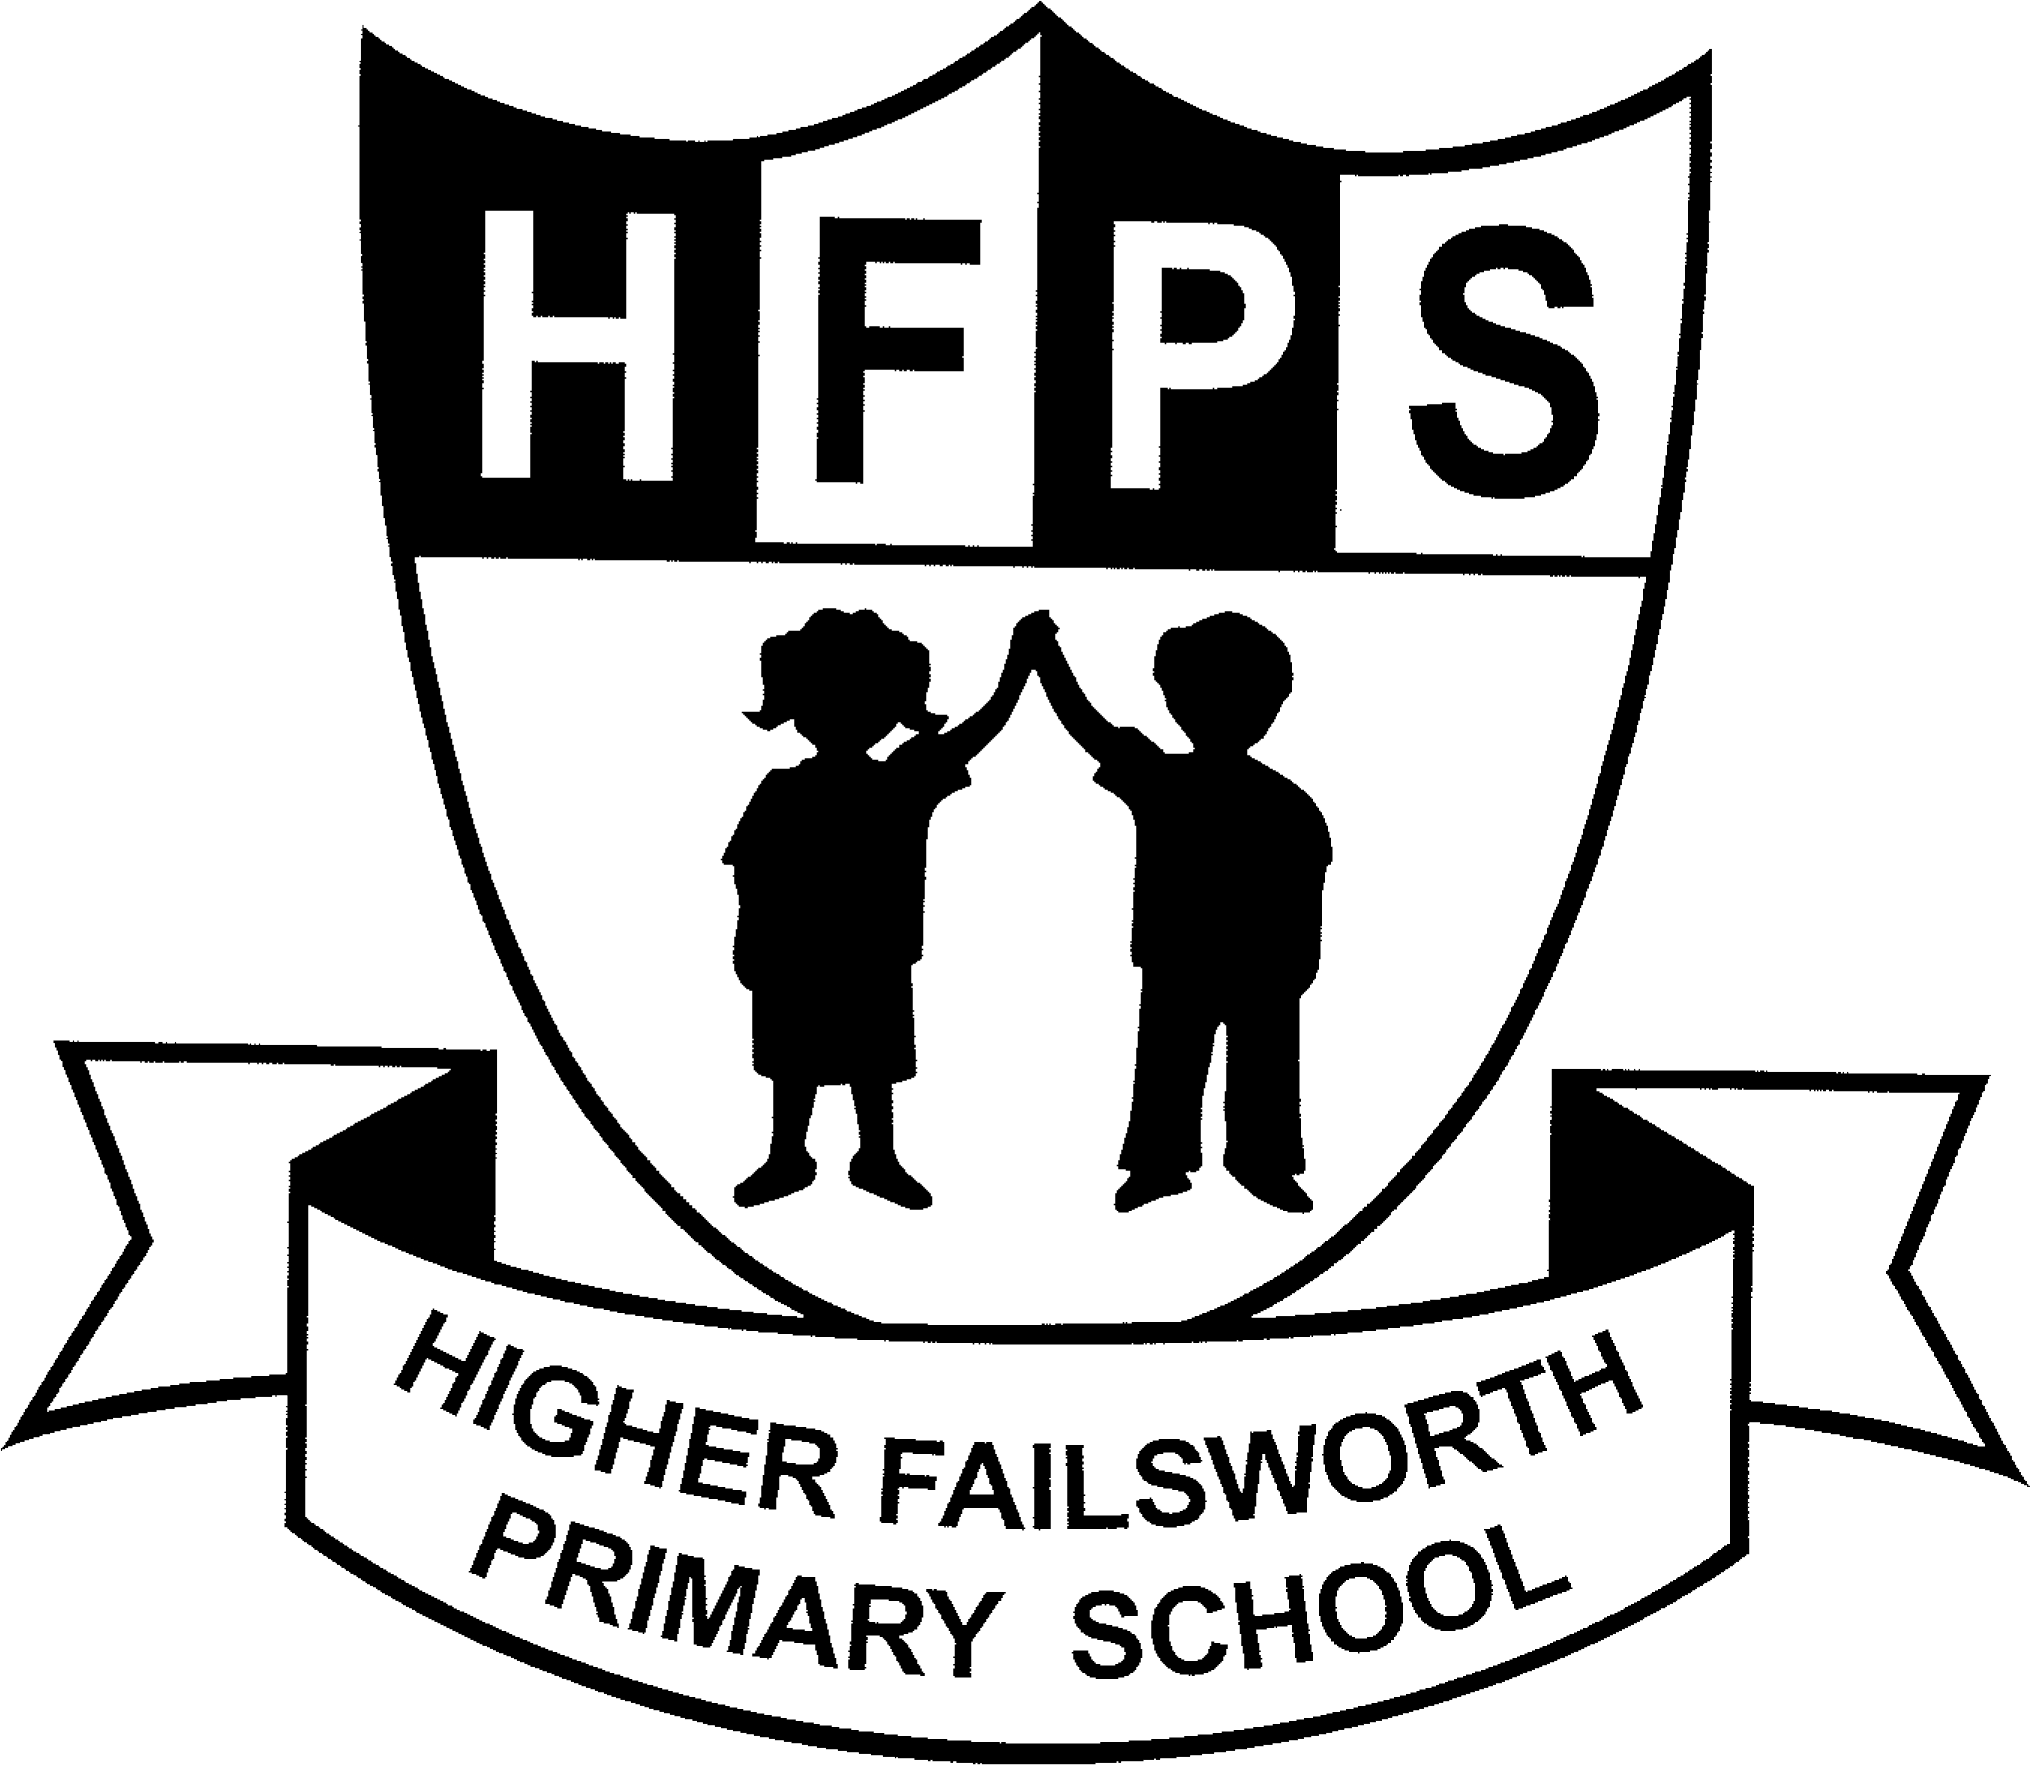 Higher Failsworth Primary School